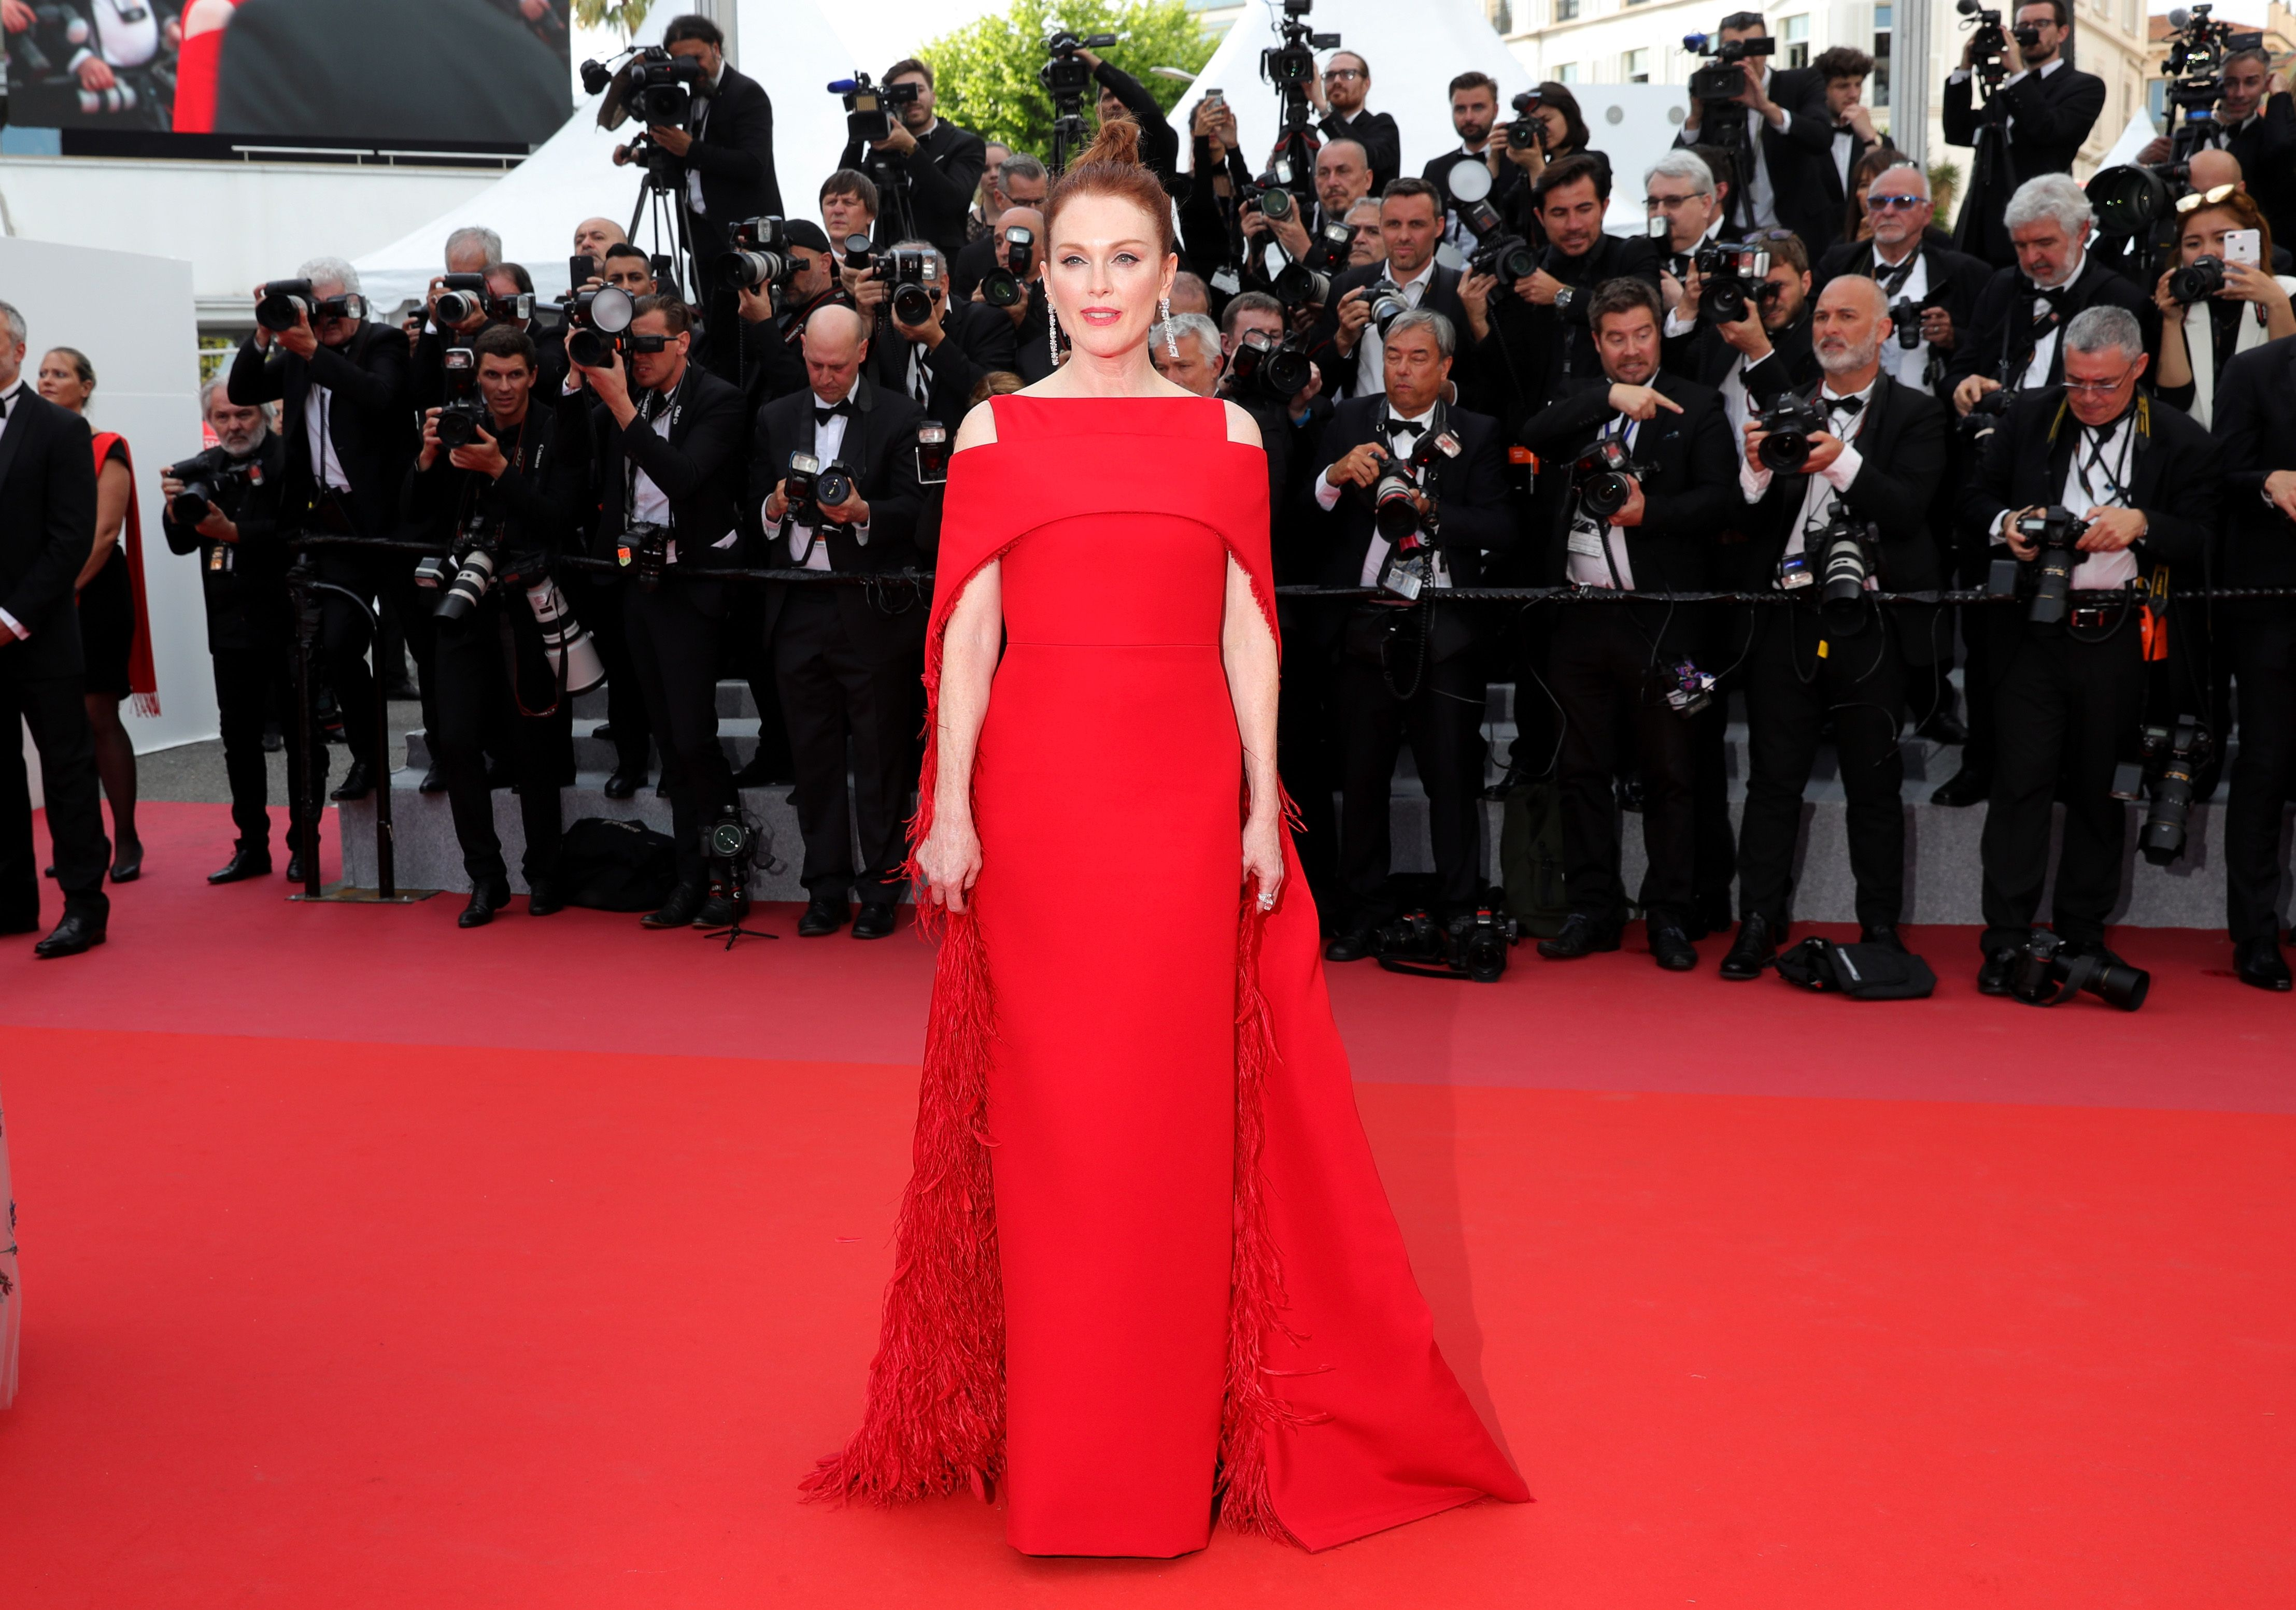 Moore was the picture of elegance in simple scarlet Givenchy gown that was elevated with a cape attachment with feathering on the underside at the 2018 Cannes Film Festival.